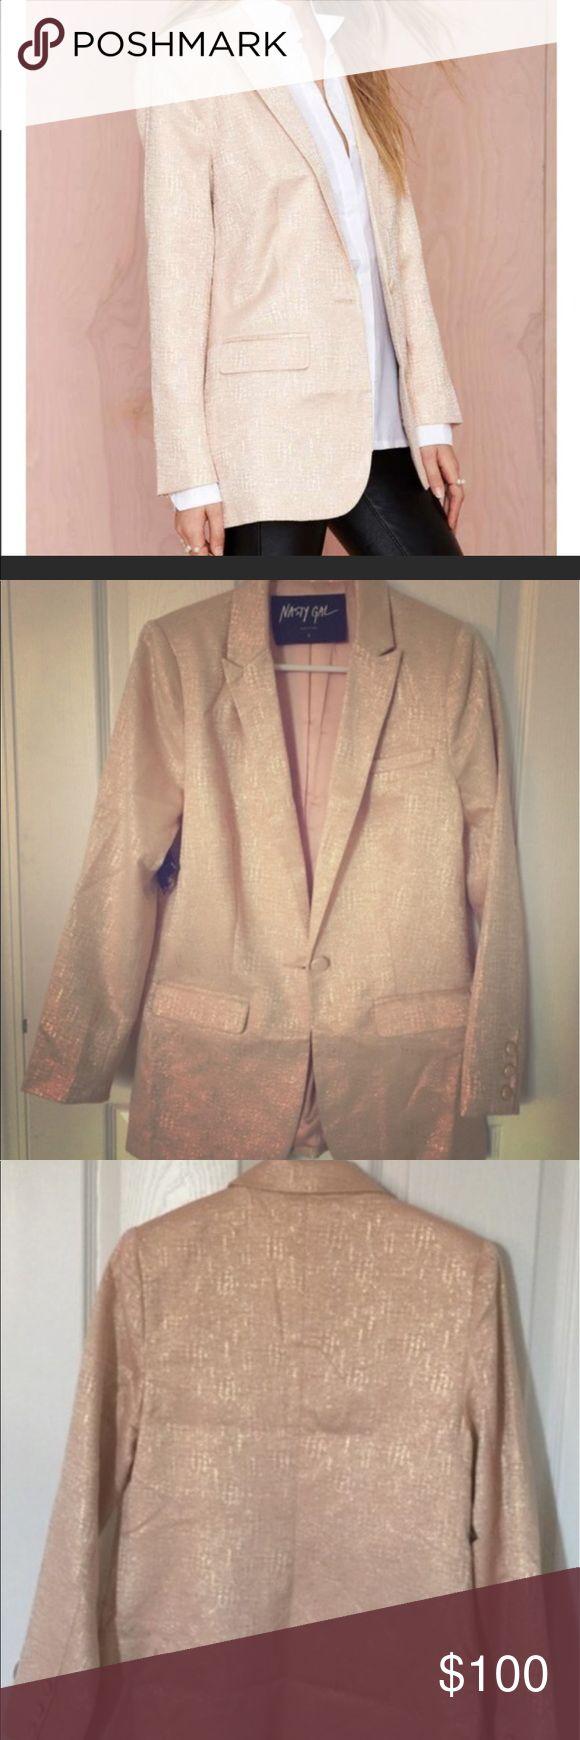 Nasty Gal Blazer. Cute, fun blazer with a bit of a metallic sheen for going out with friends, pair with skinnies, or to dress up a work outfit. New with tags, never worn. No offers will be considered if the 'make me an offer' feature isn't used. No trades, no PayPal. Nasty Gal Jackets & Coats Blazers